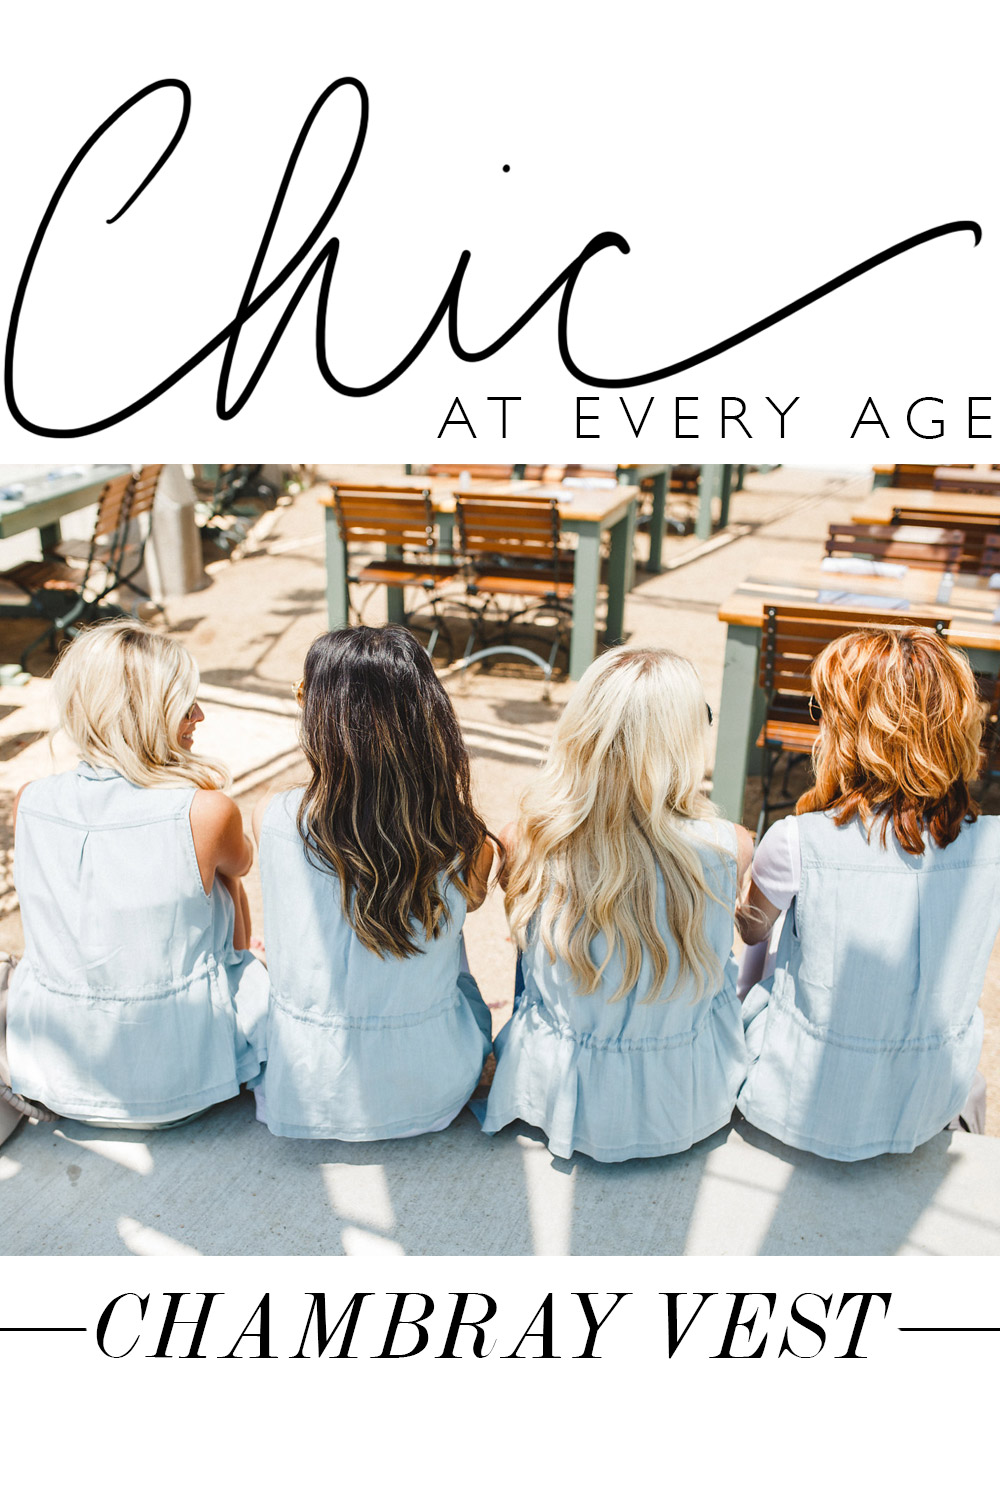 chic at every age, blonde brunette redhead in chambray vest